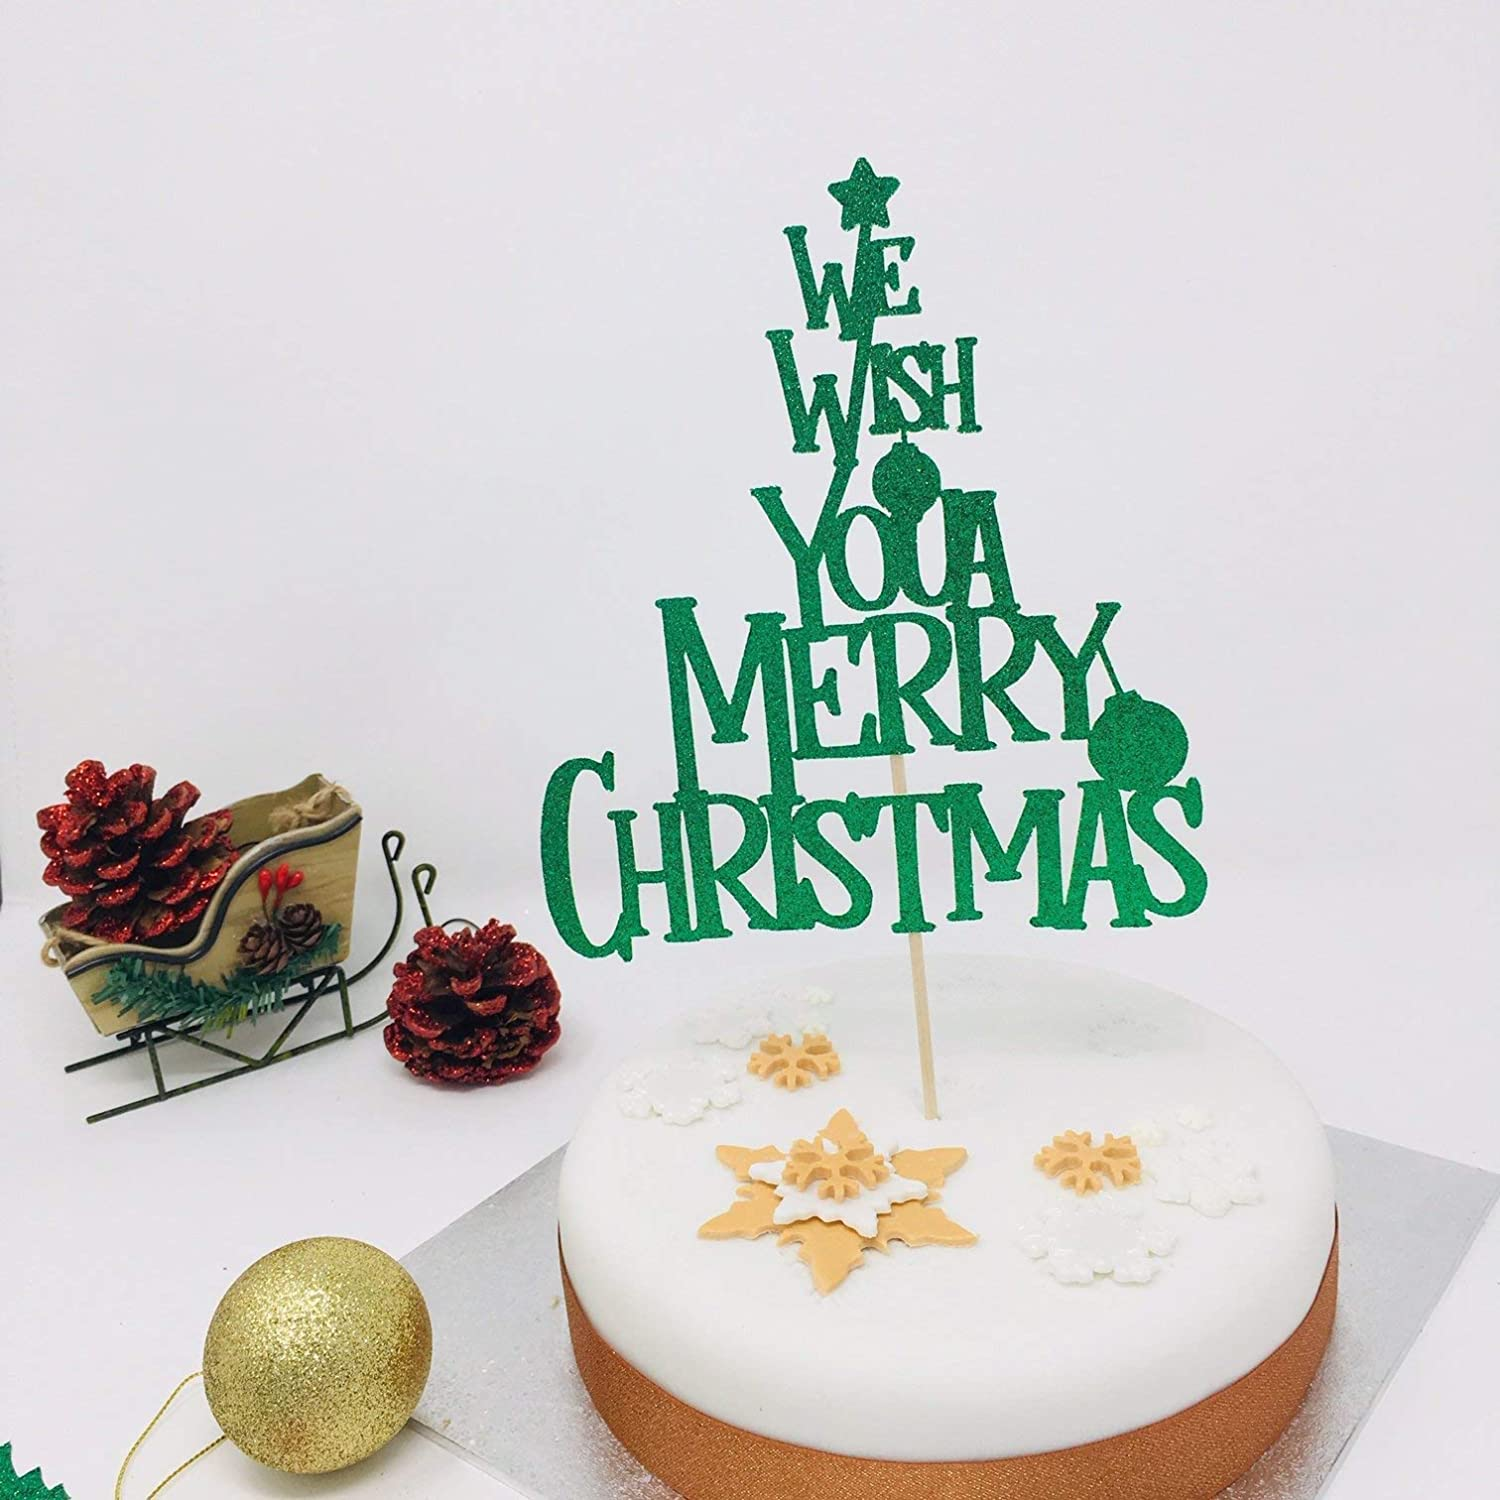 We wish you a Merry Christmas cake topper Christmas cake decoration with glitter topper Christmas table decorations.